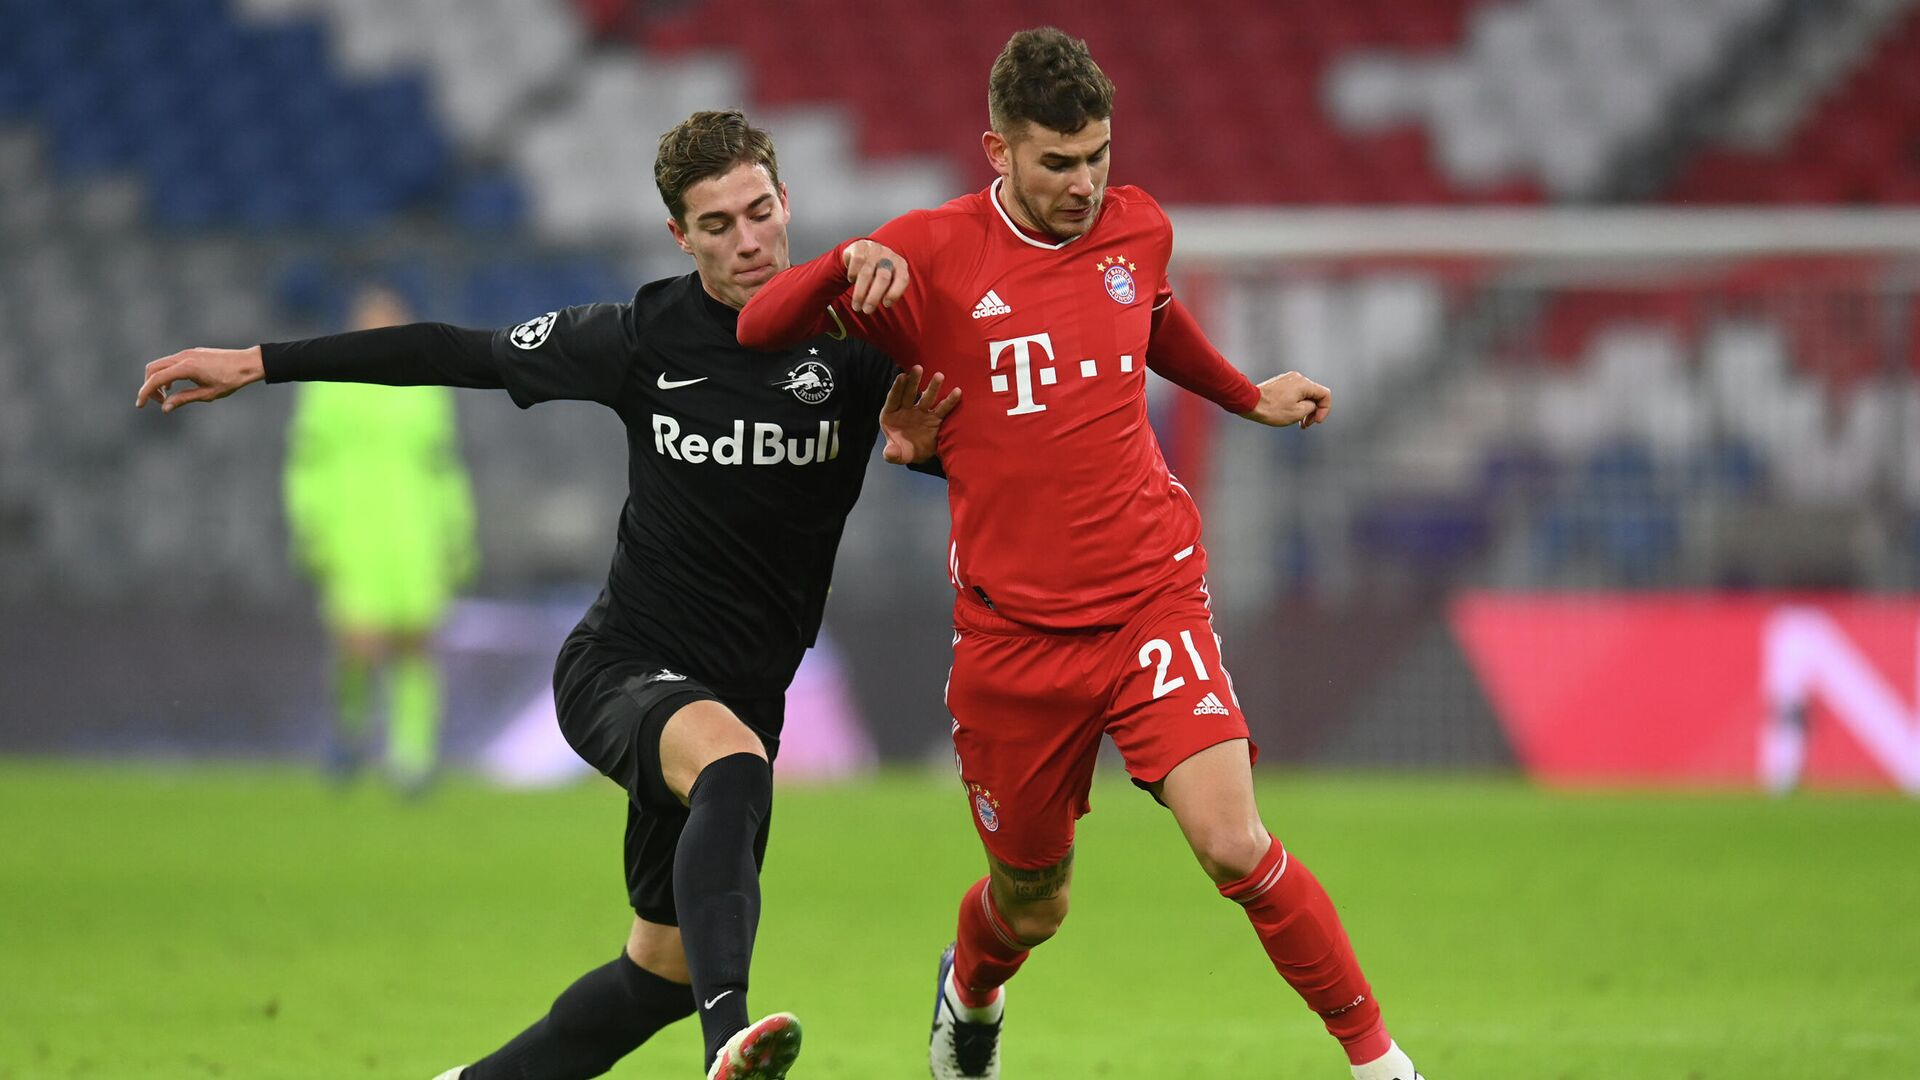 Salzburg's Croatian midfielder Luka Susic (L) and Bayern Munich's French defender Lucas Hernandez vie for the ball during the UEFA Champions League group A football match Bayern Munich v Salzburg in Munich, southern Germany on November 25, 2020. (Photo by CHRISTOF STACHE / AFP) - РИА Новости, 1920, 26.11.2020